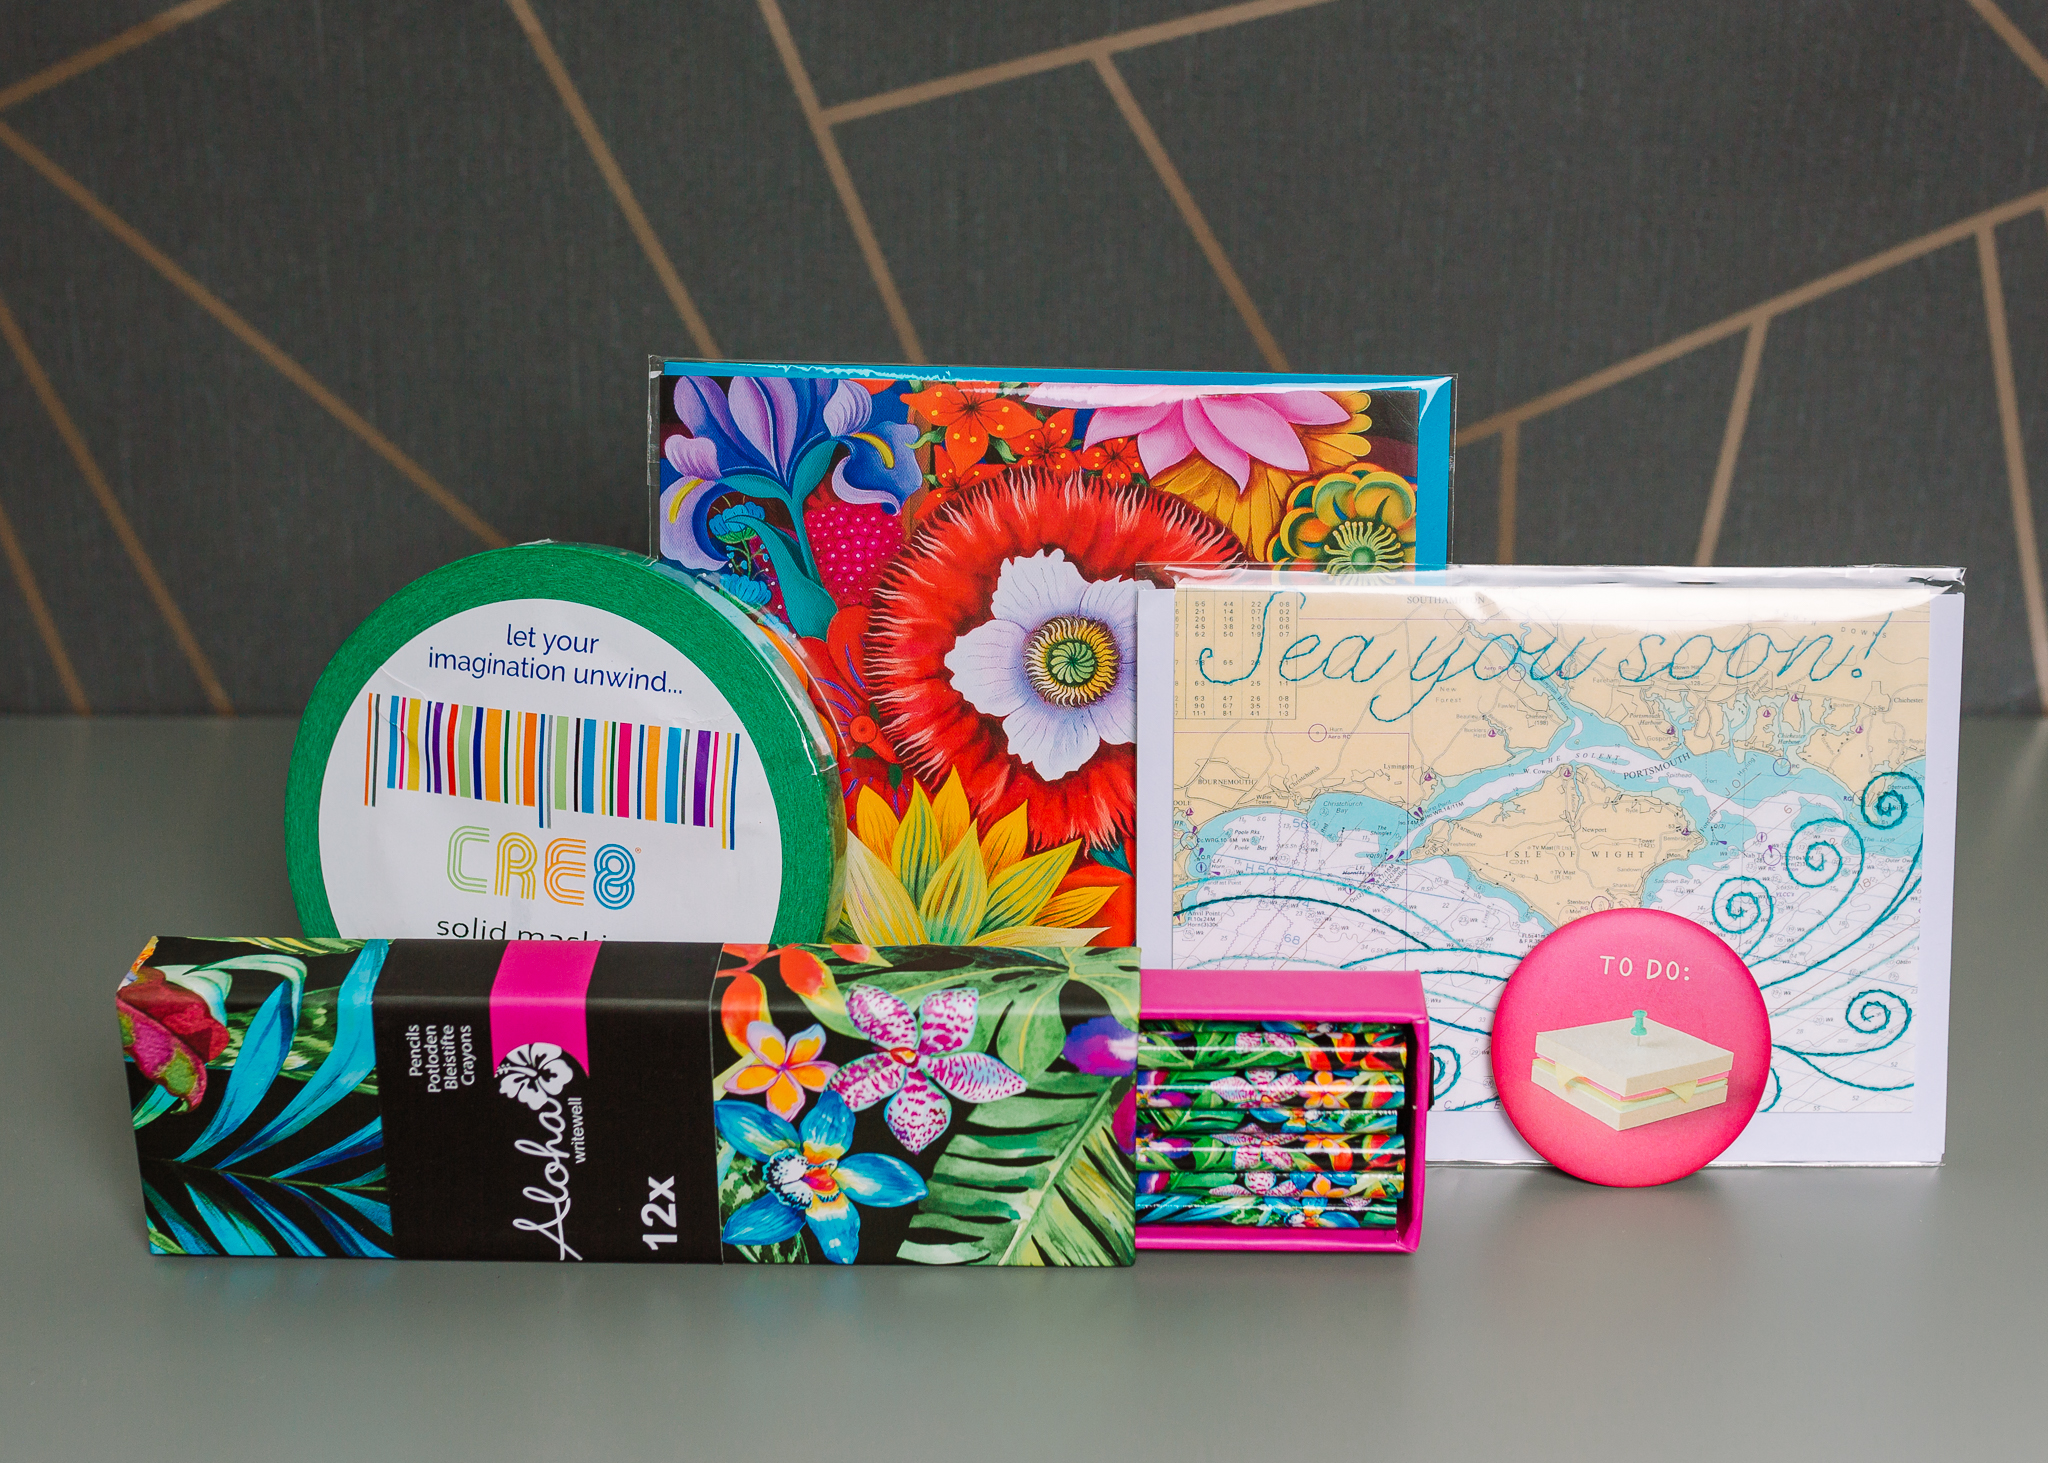 ink drops stationery subscription box contents june 2016